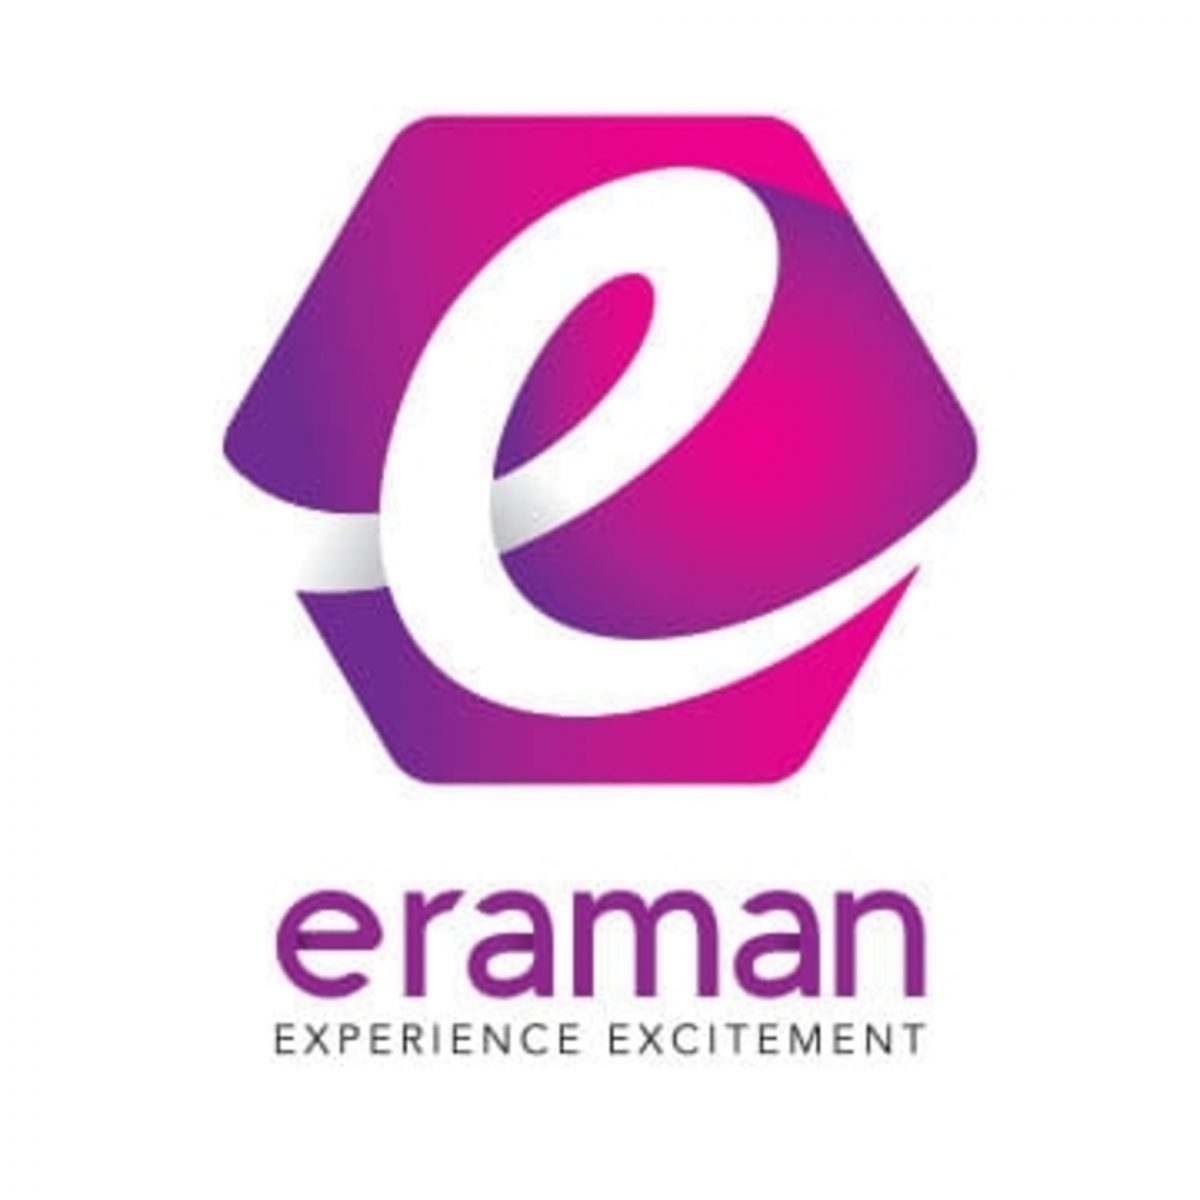 Leading Airport Duty Free Brand Eraman Partners With Online Retail Platform Ourshop